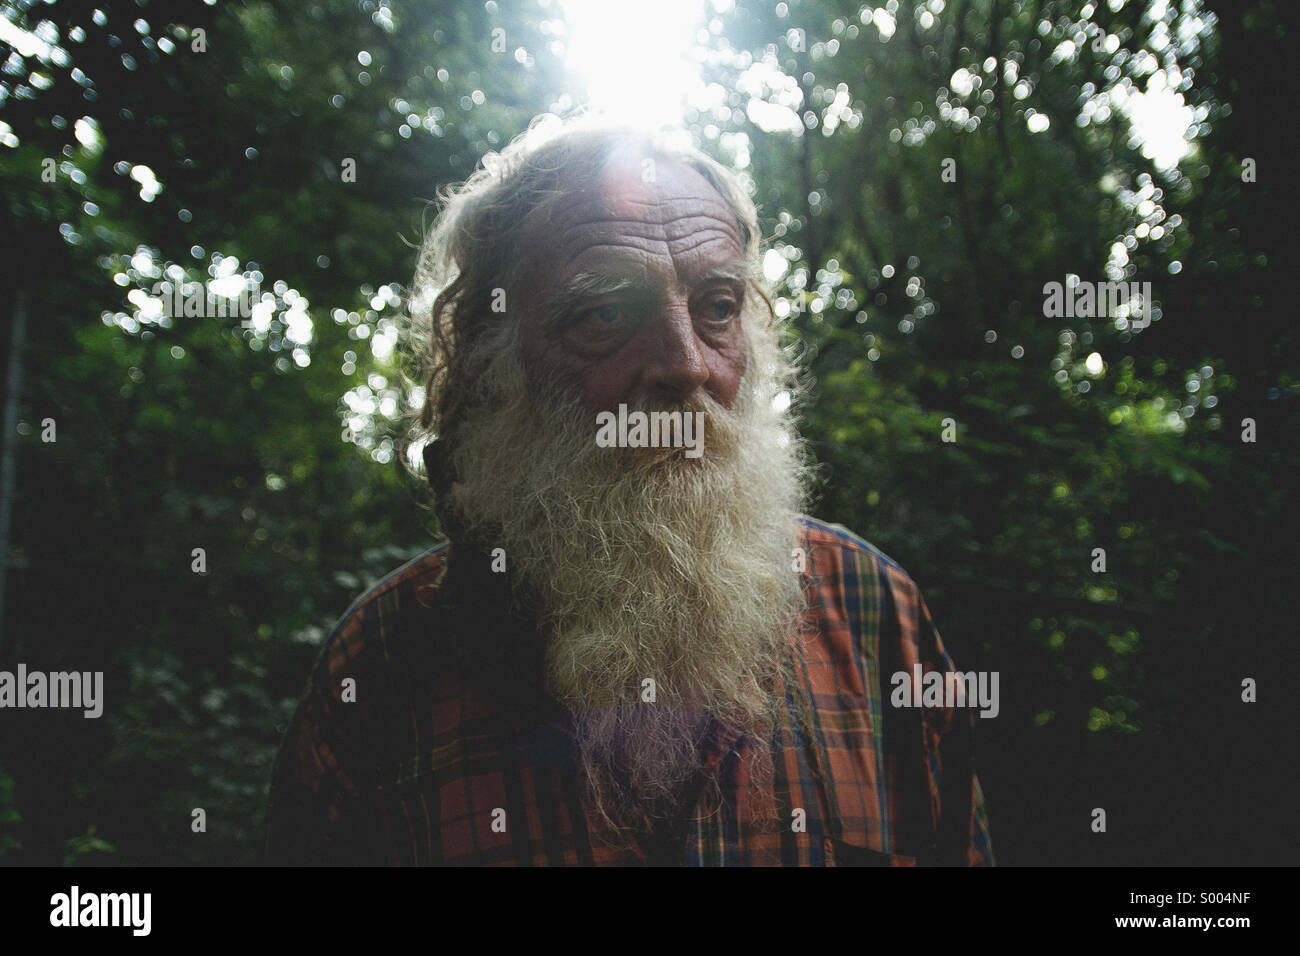 Woodsman - Stock Image